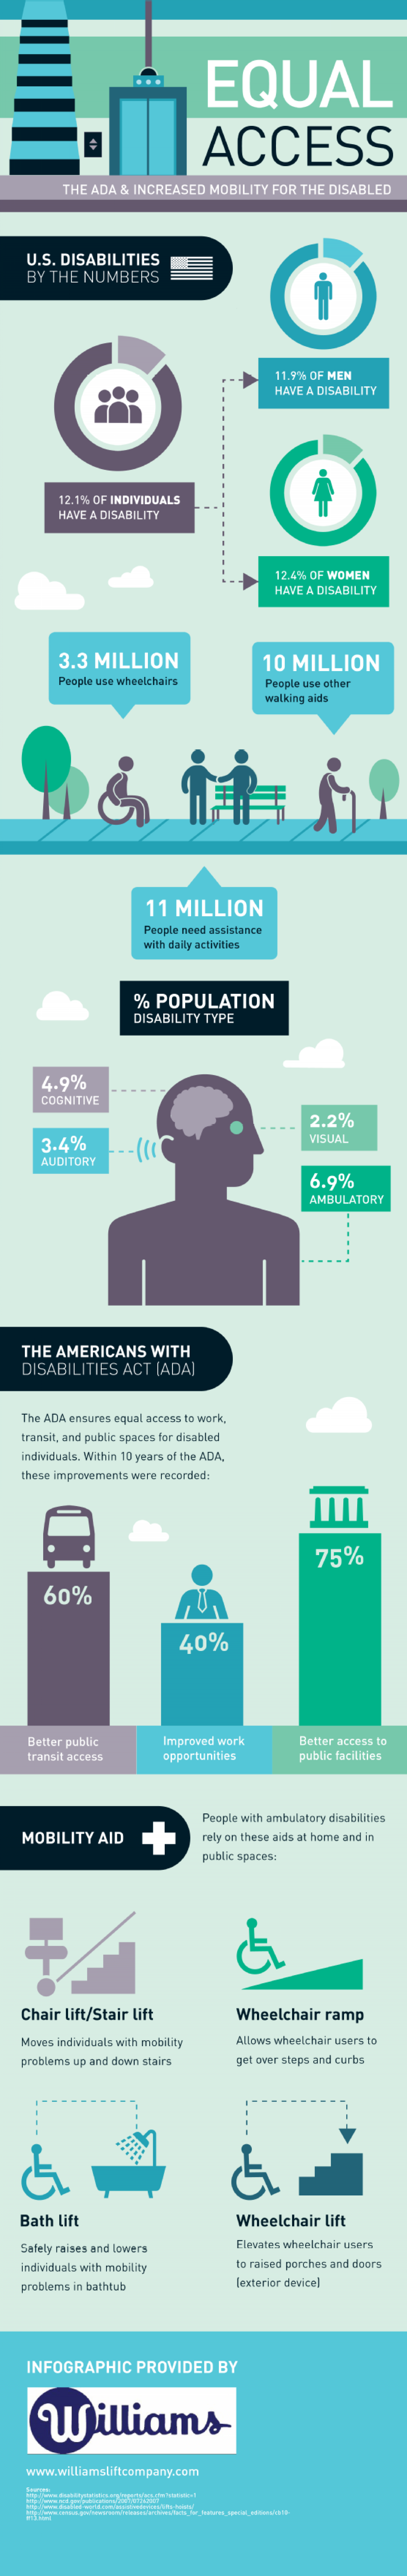 Equal Access: The ADA and Increased Mobility for the Disabled Infographic